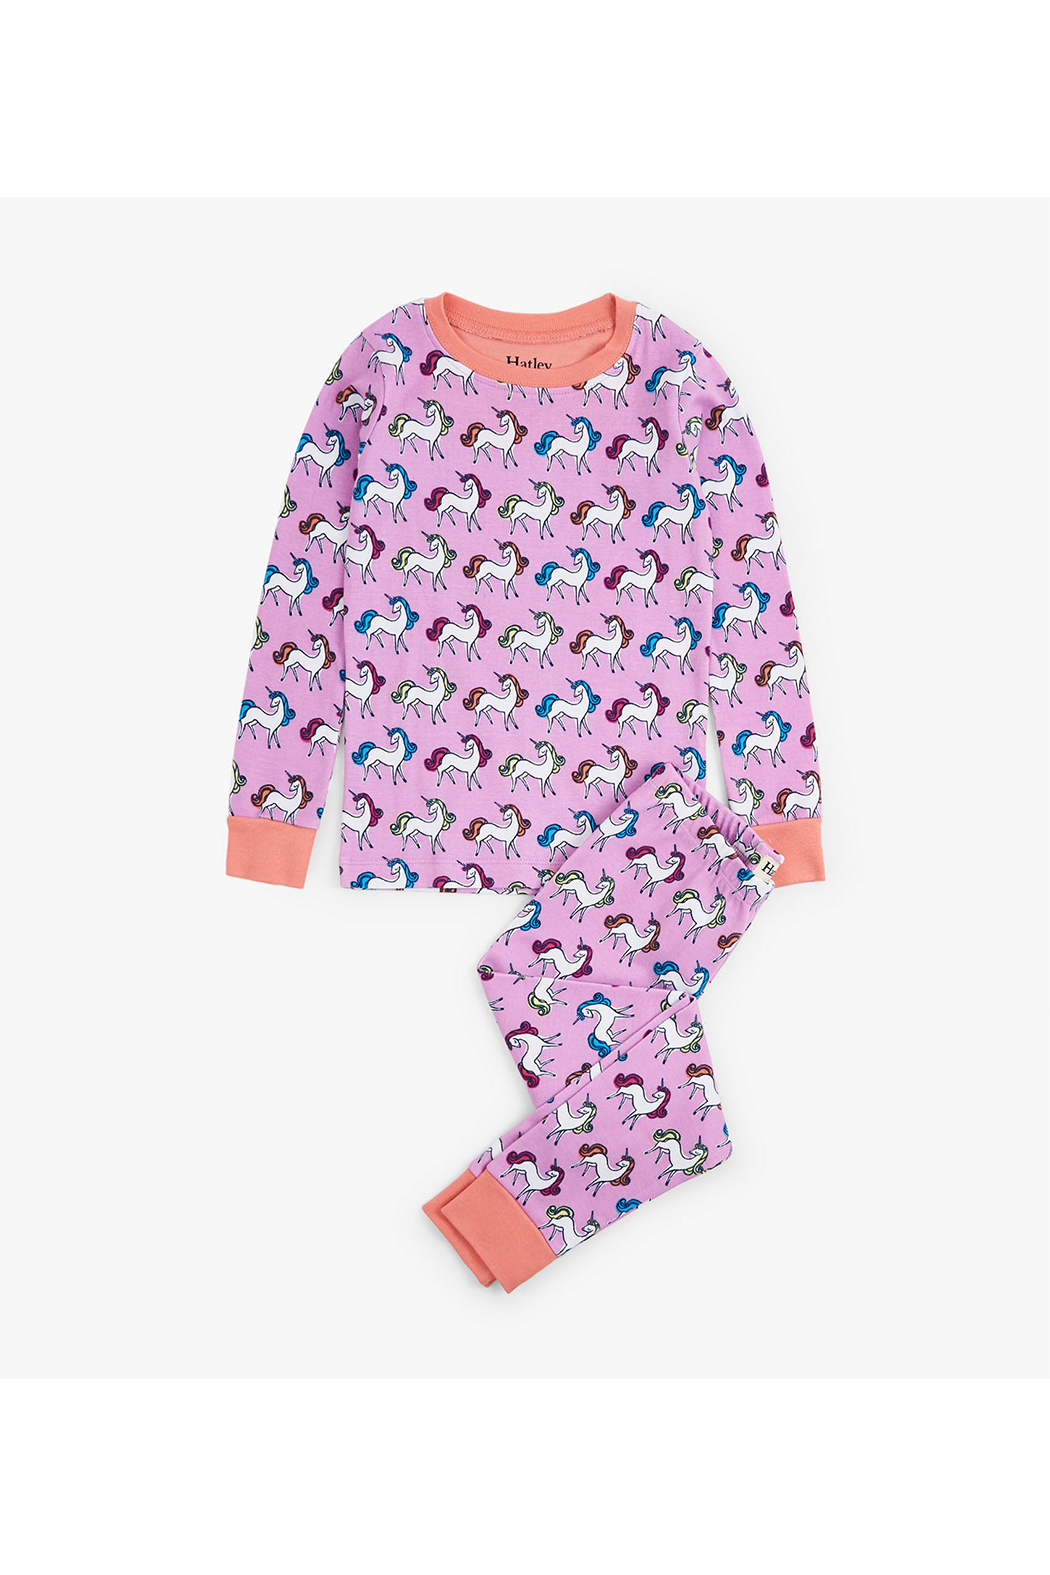 Hatley Rainbow Unicorns Organic Cotton Pajama Set - Main Image